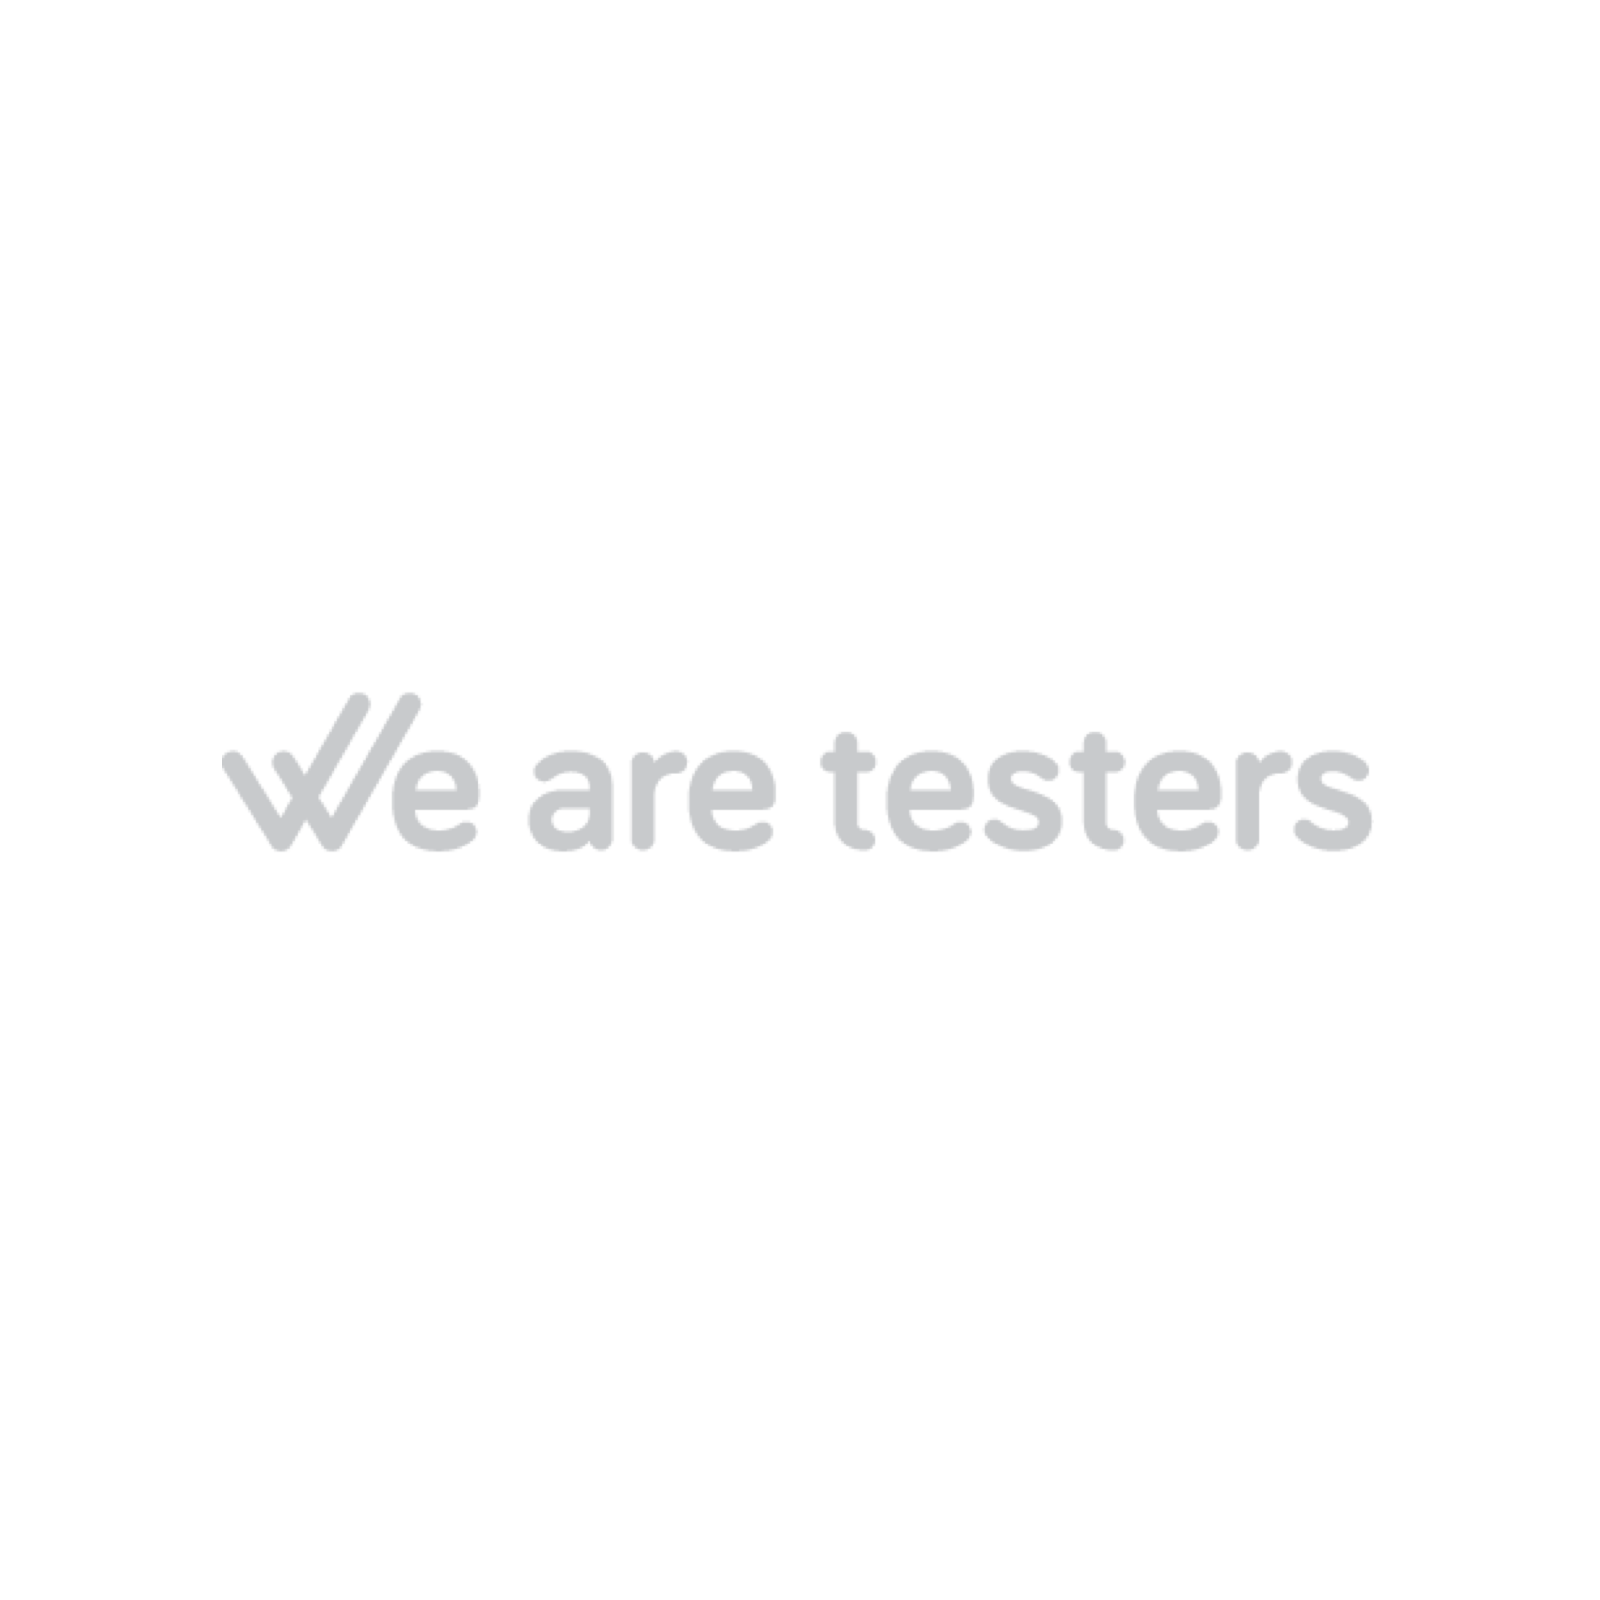 Copy of We are testers Logo